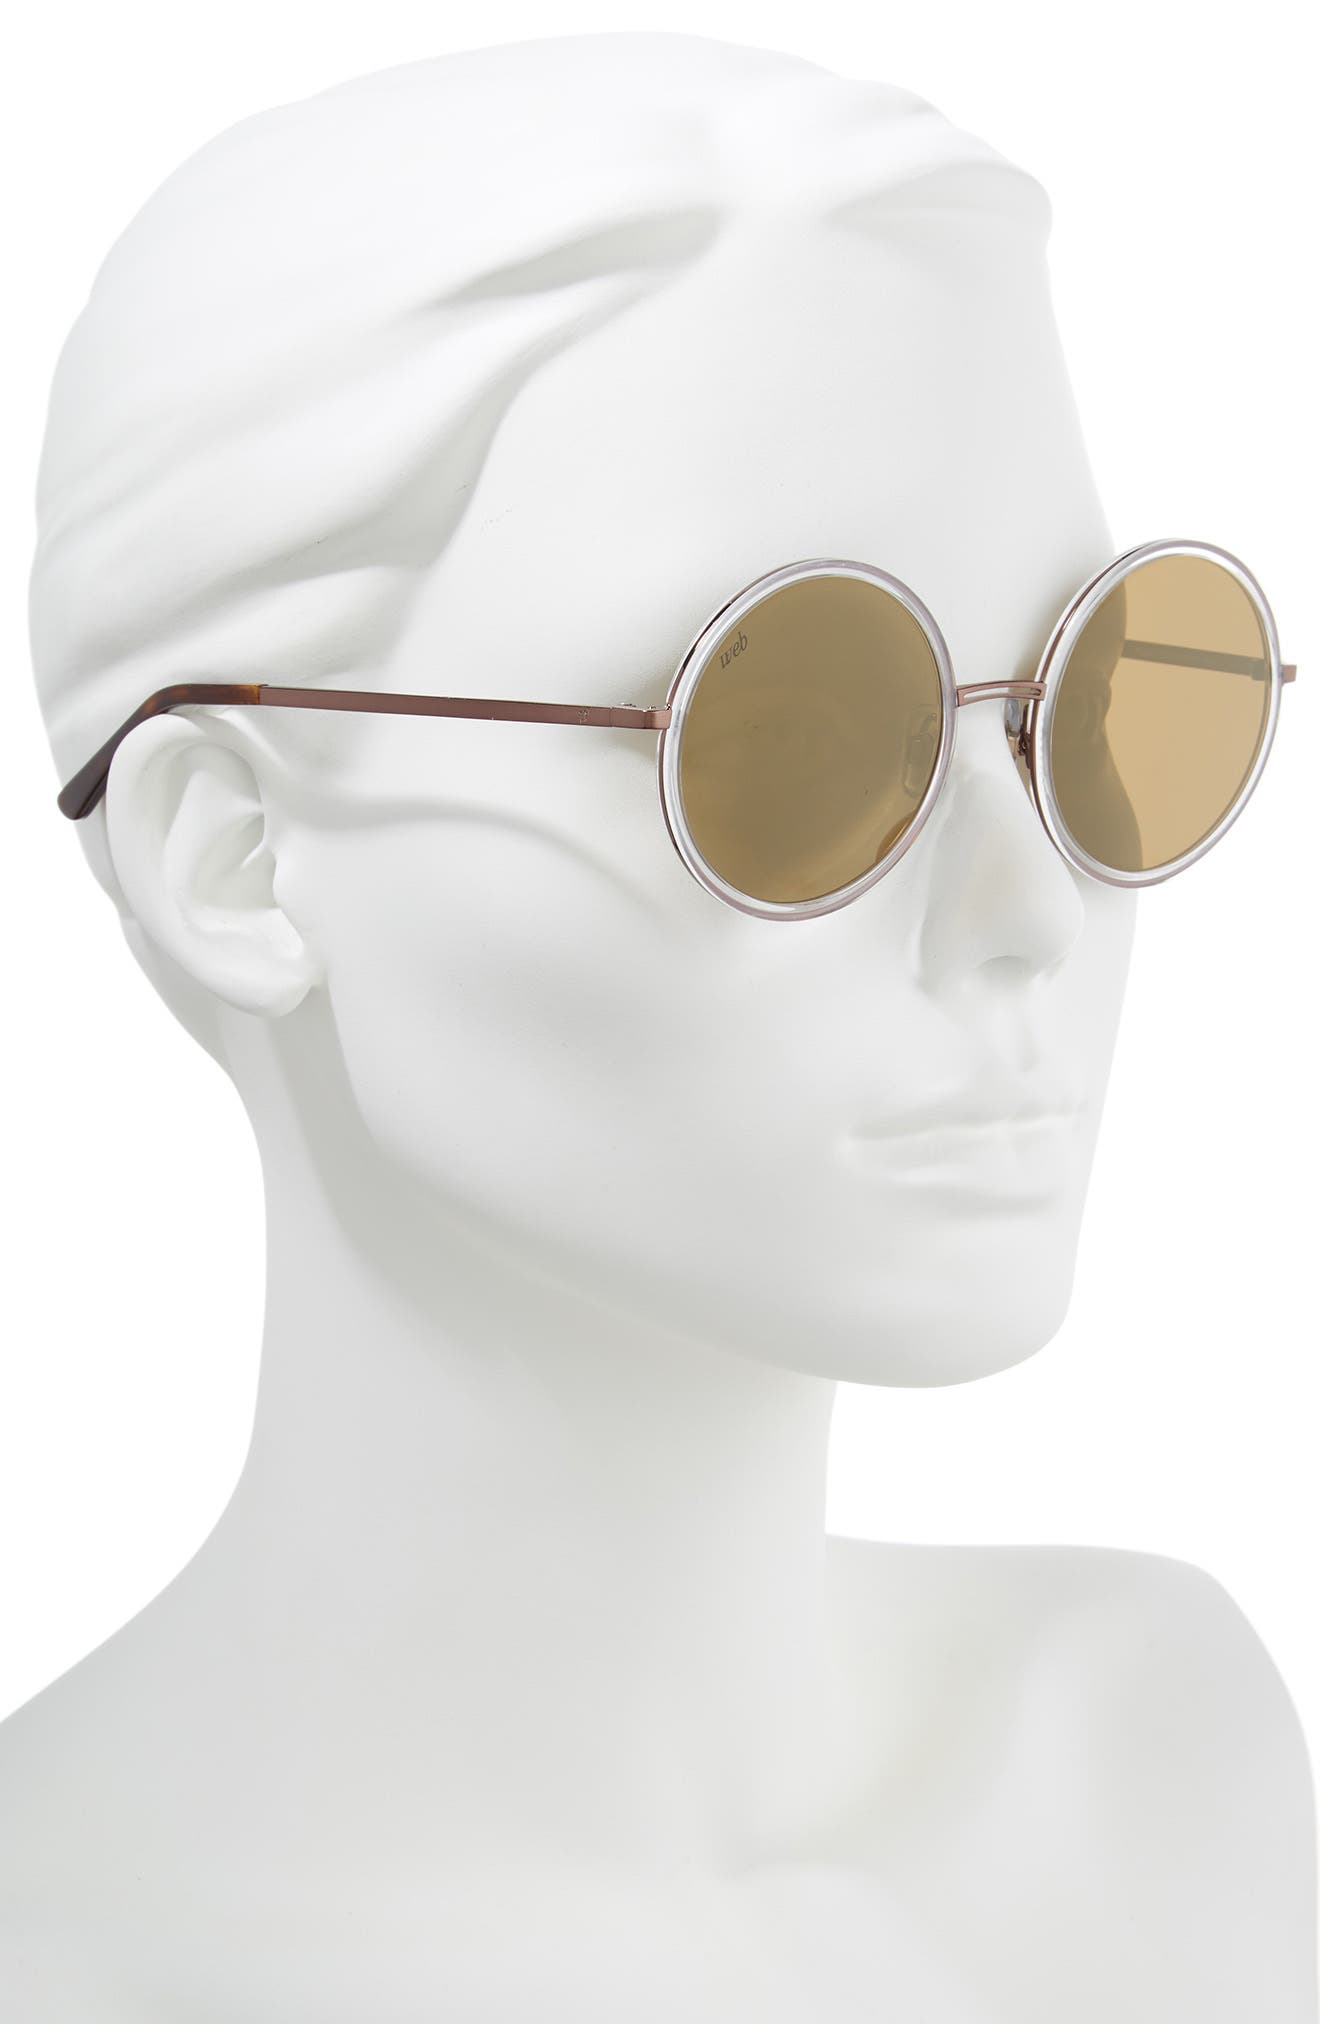 52mm Sunglasses,                             Alternate thumbnail 2, color,                             Crystal/ Brown Mirror